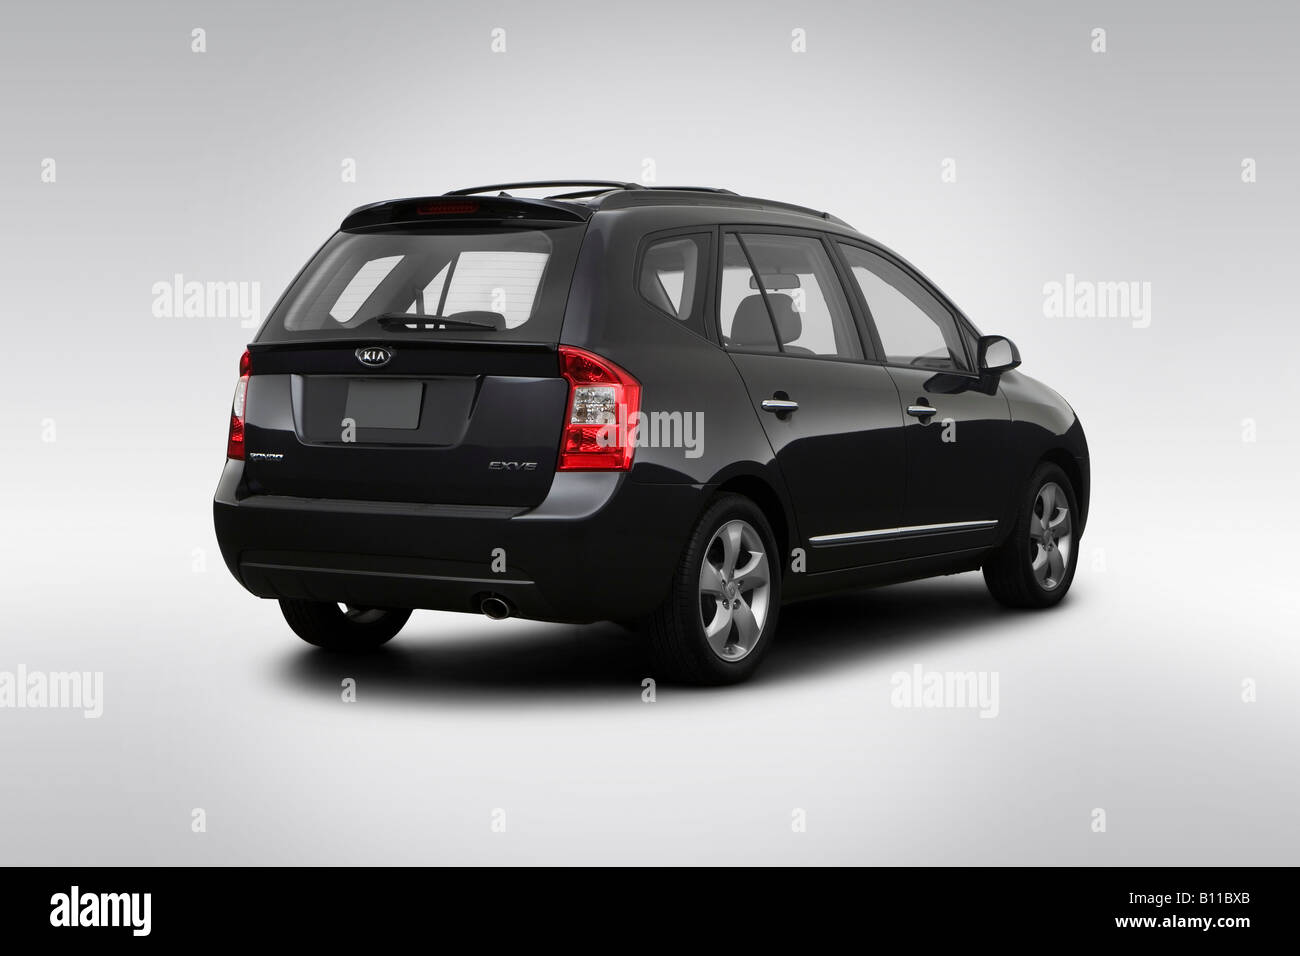 2008 Kia Rondo Ex V6 In Gray Rear Angle View Stock Photo 17856339